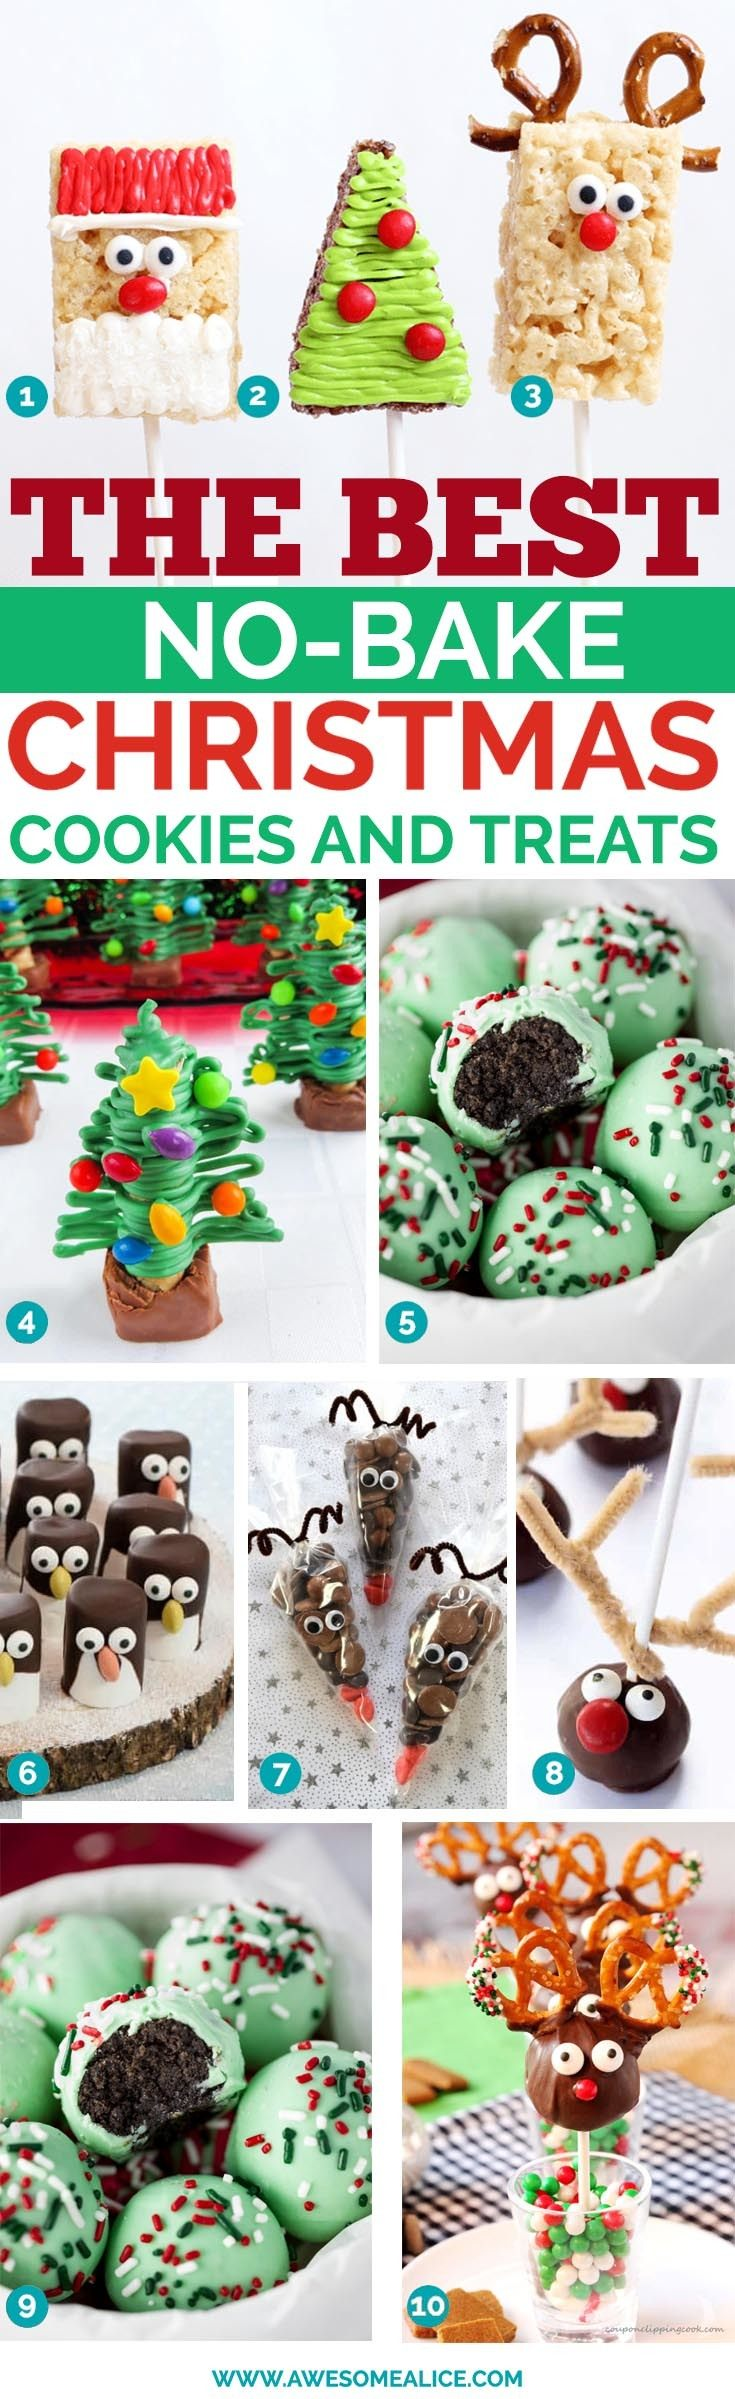 Quick and Easy No-Bake Christmas Treats